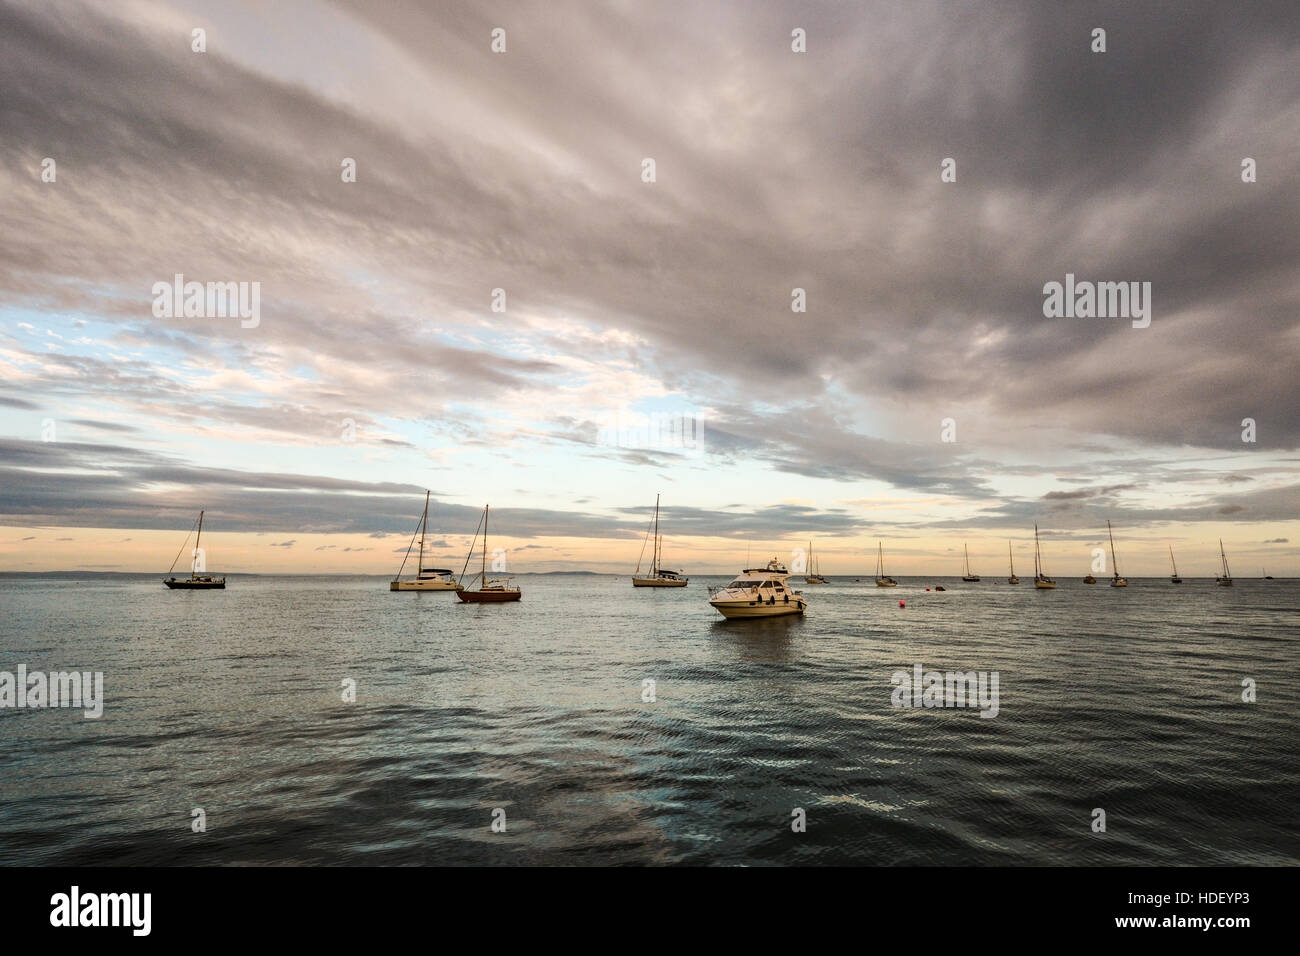 Yachts anchored at Dale on a calm summers evening at the start of a dramatic sunset. - Stock Image